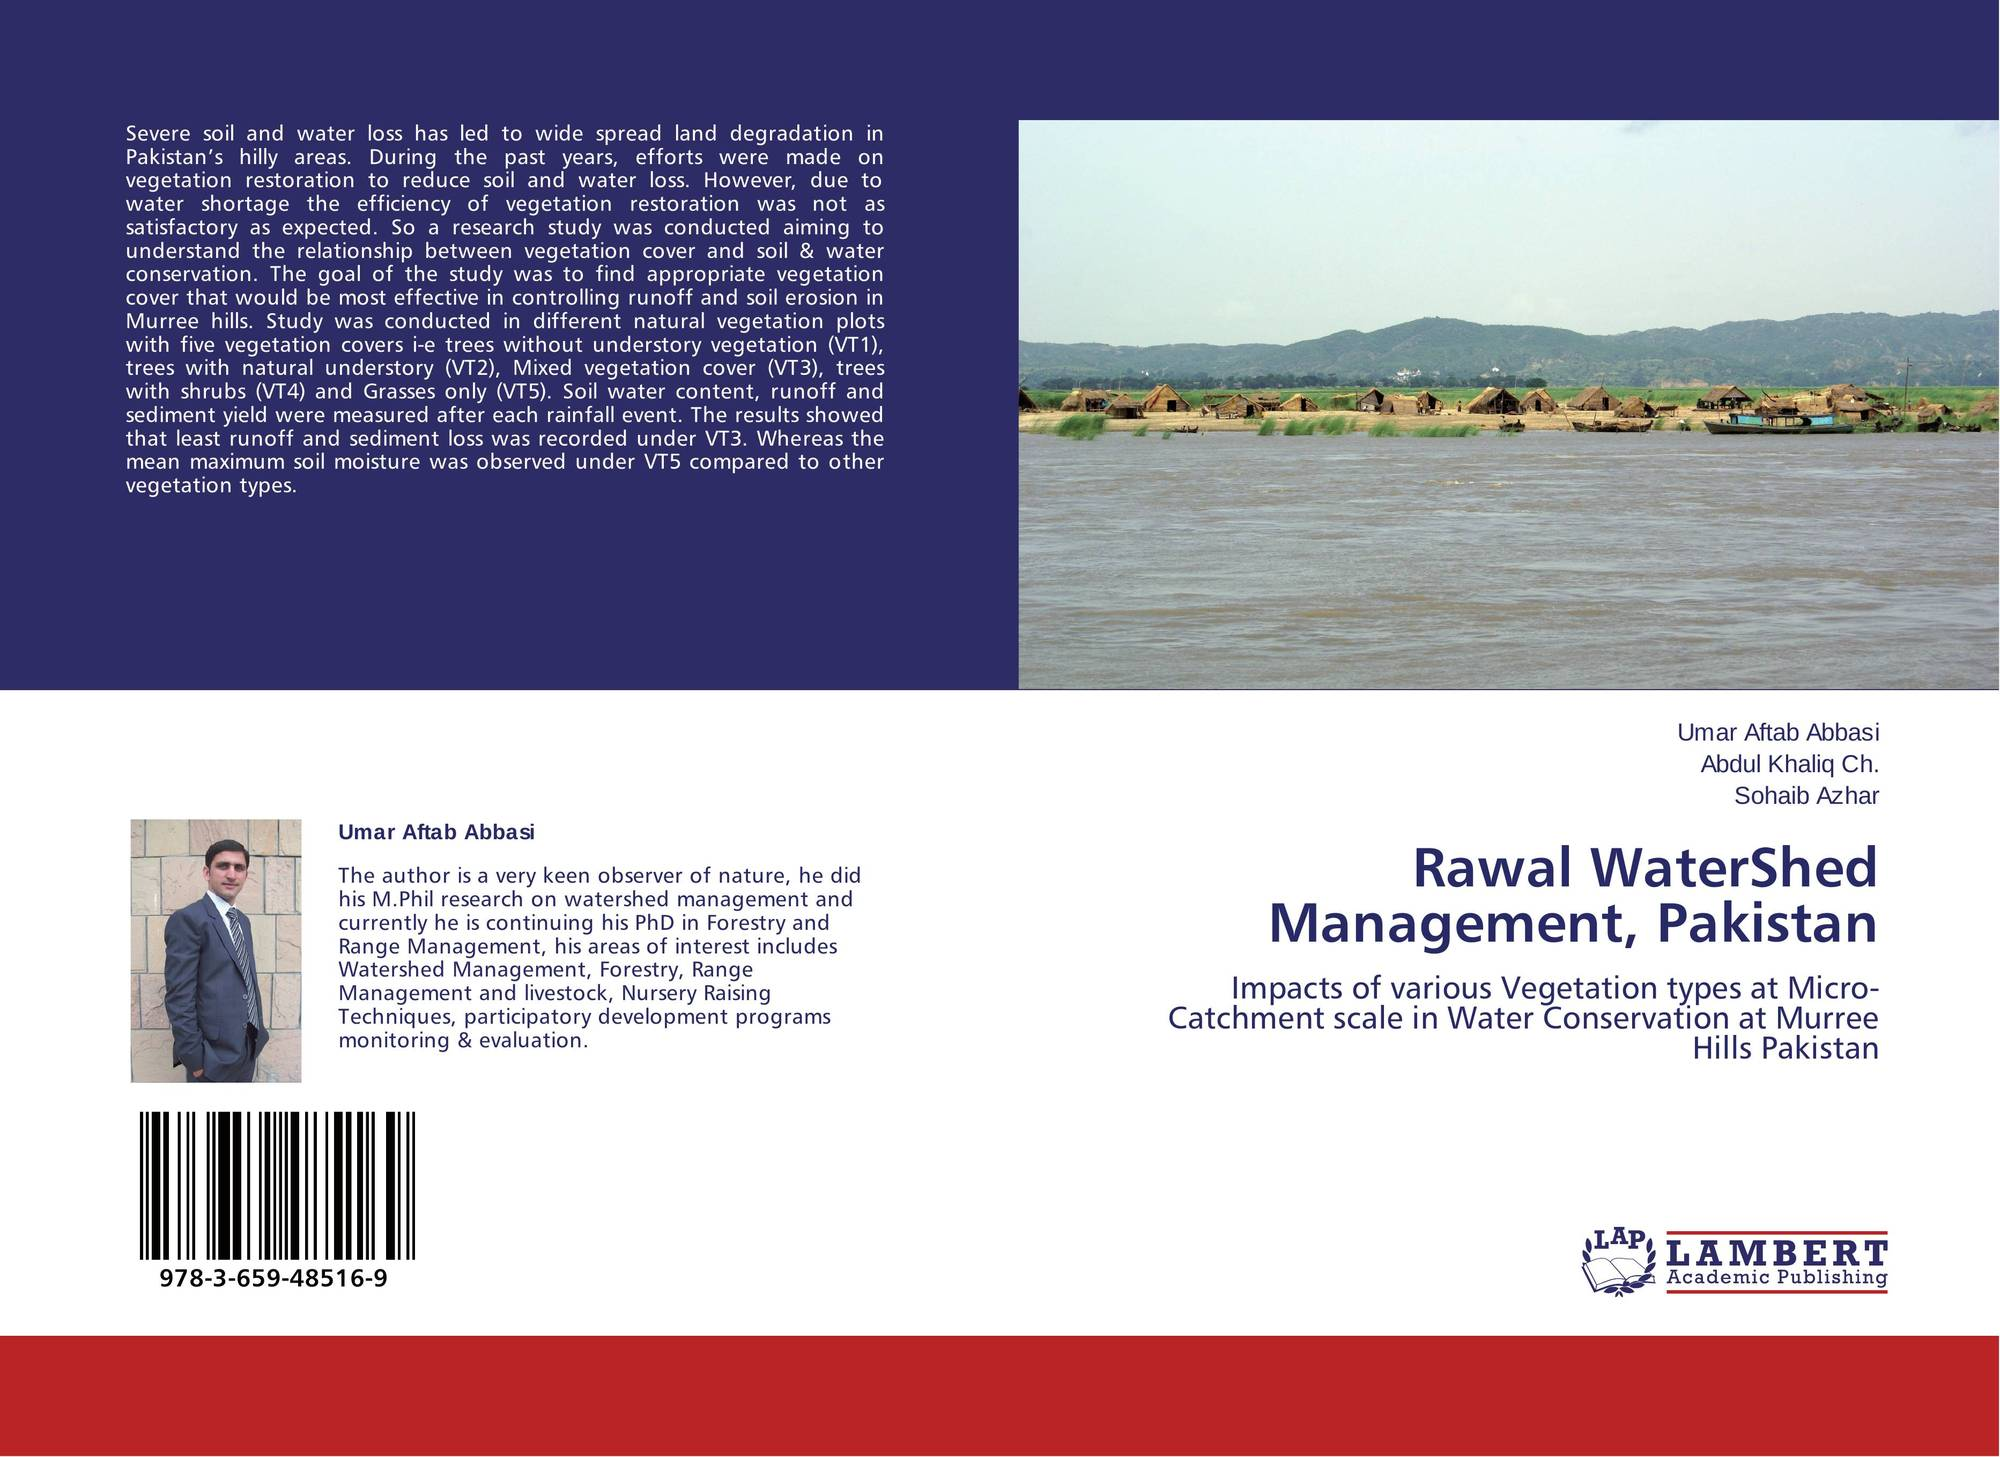 Water Management and Governance